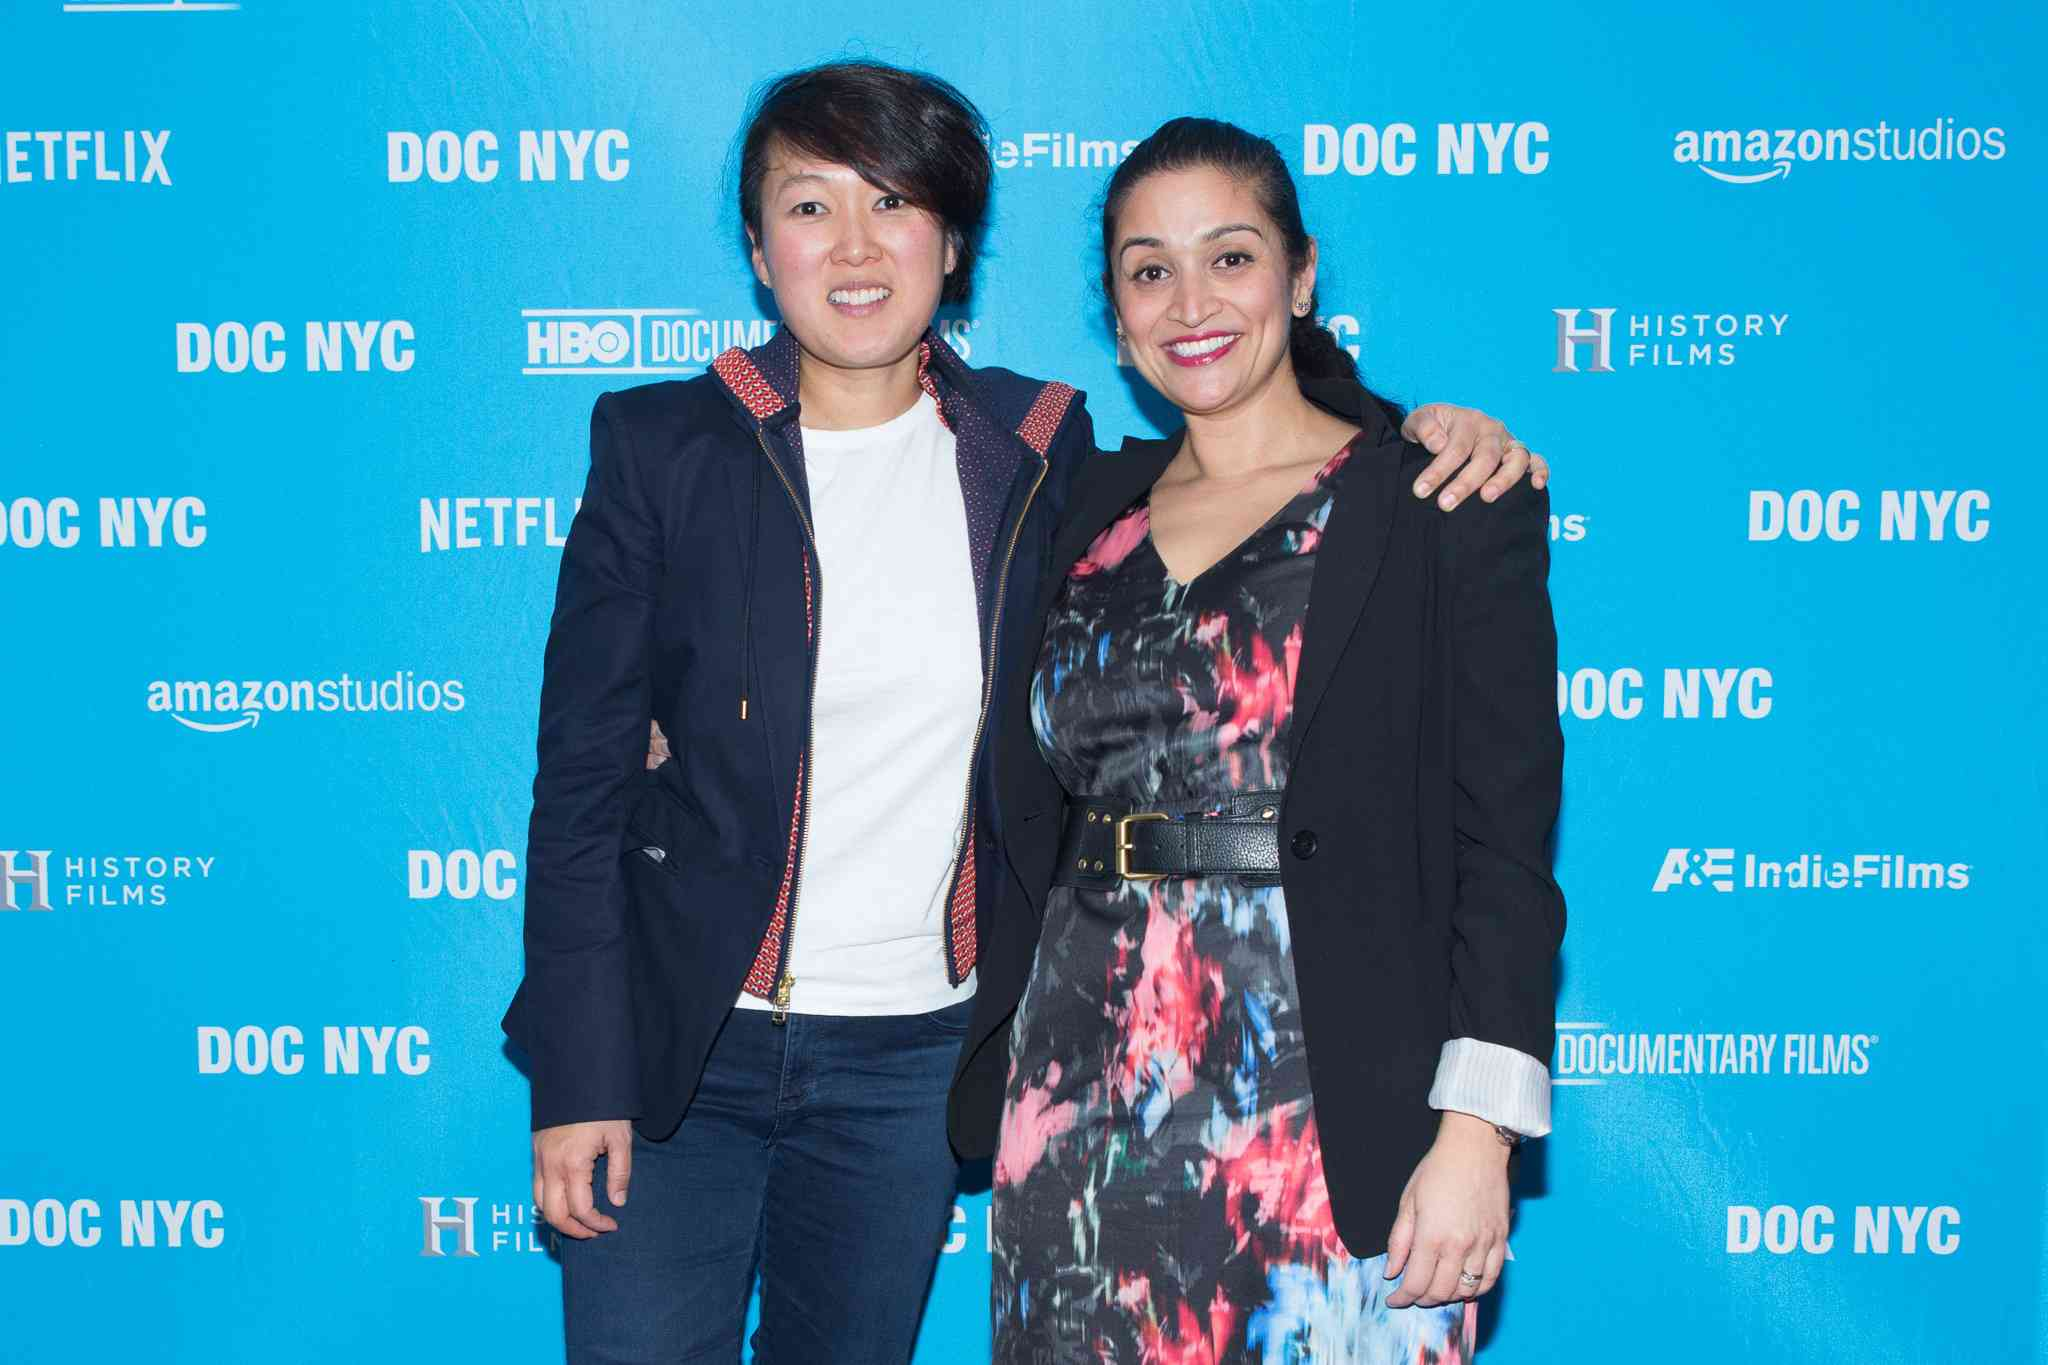 Ann S Kim (left) and Priya Giri Desai.